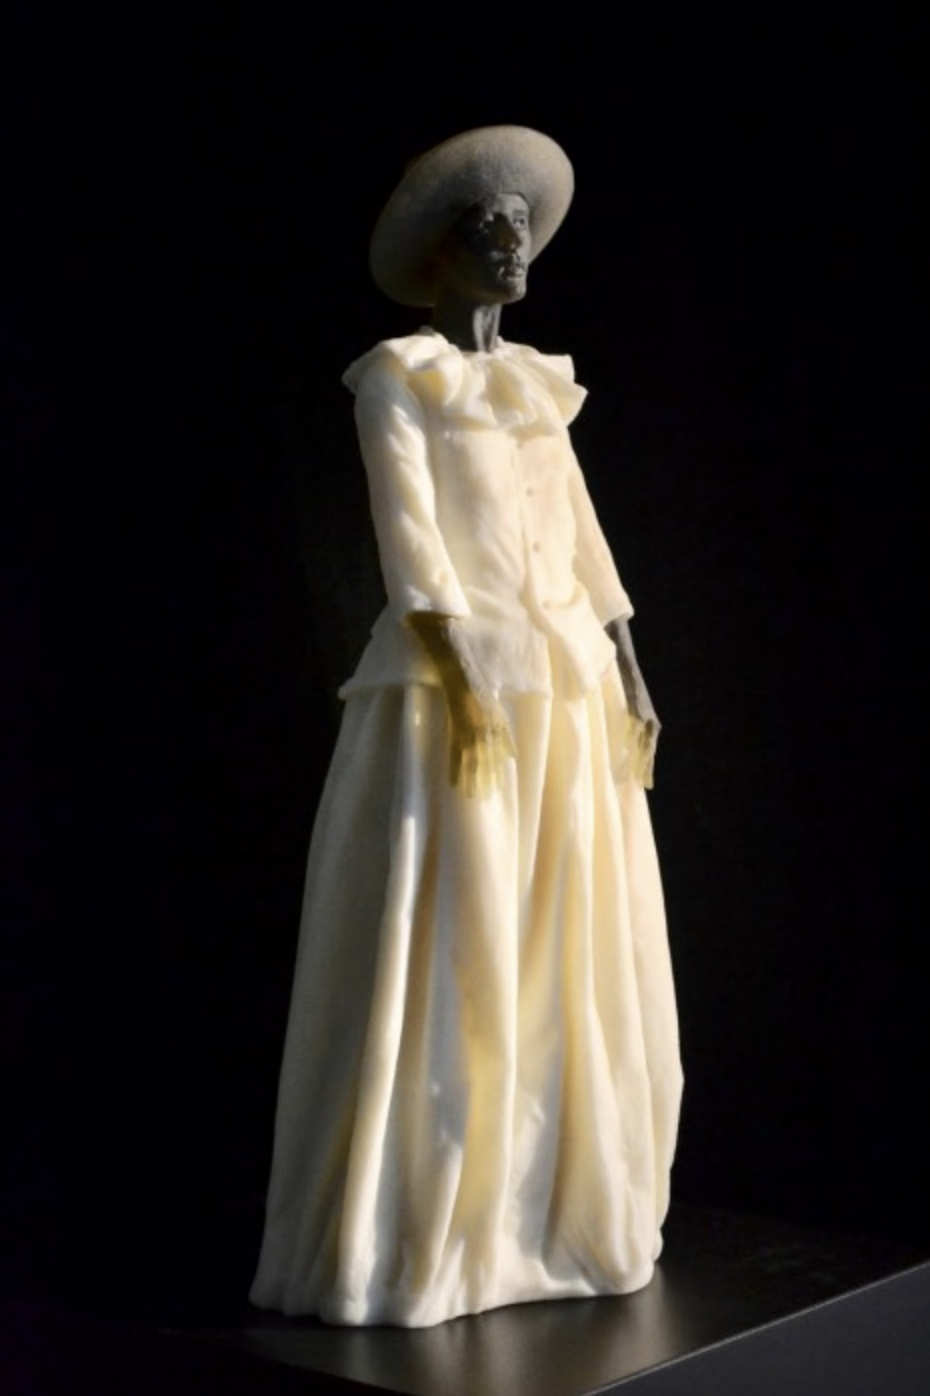 Garbo Figure (hands resting at sides), 2018 cast glass 25 × 12 × 9.5 inches